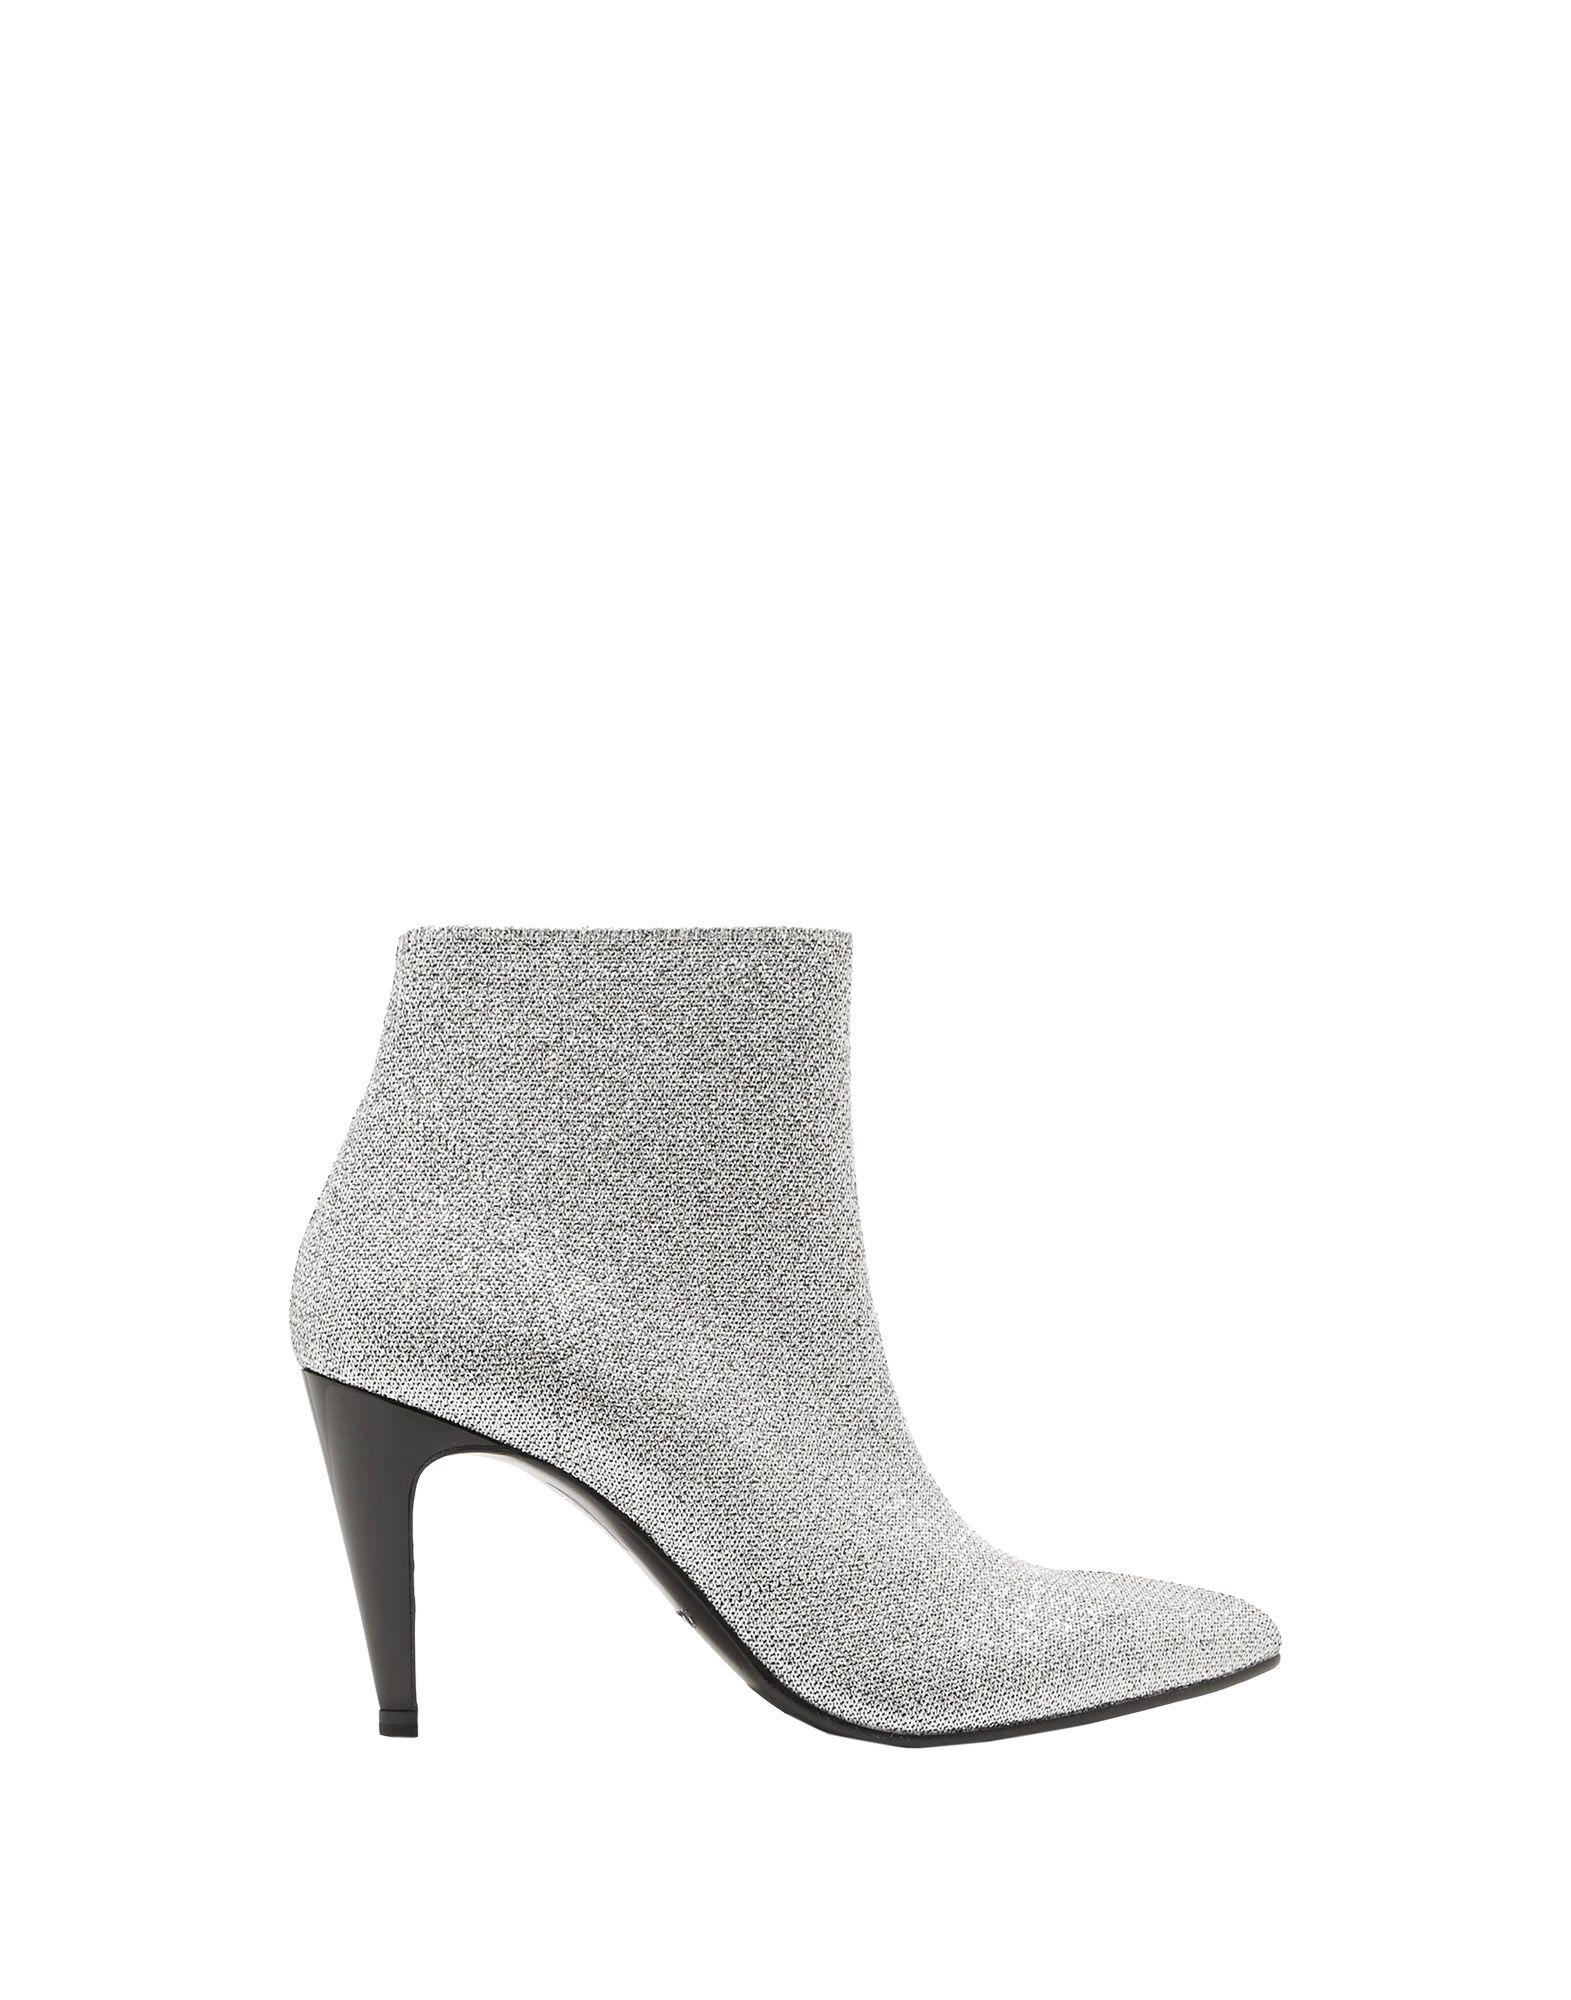 Robert Clergerie Leather Ankle Boots in Silver (Metallic)